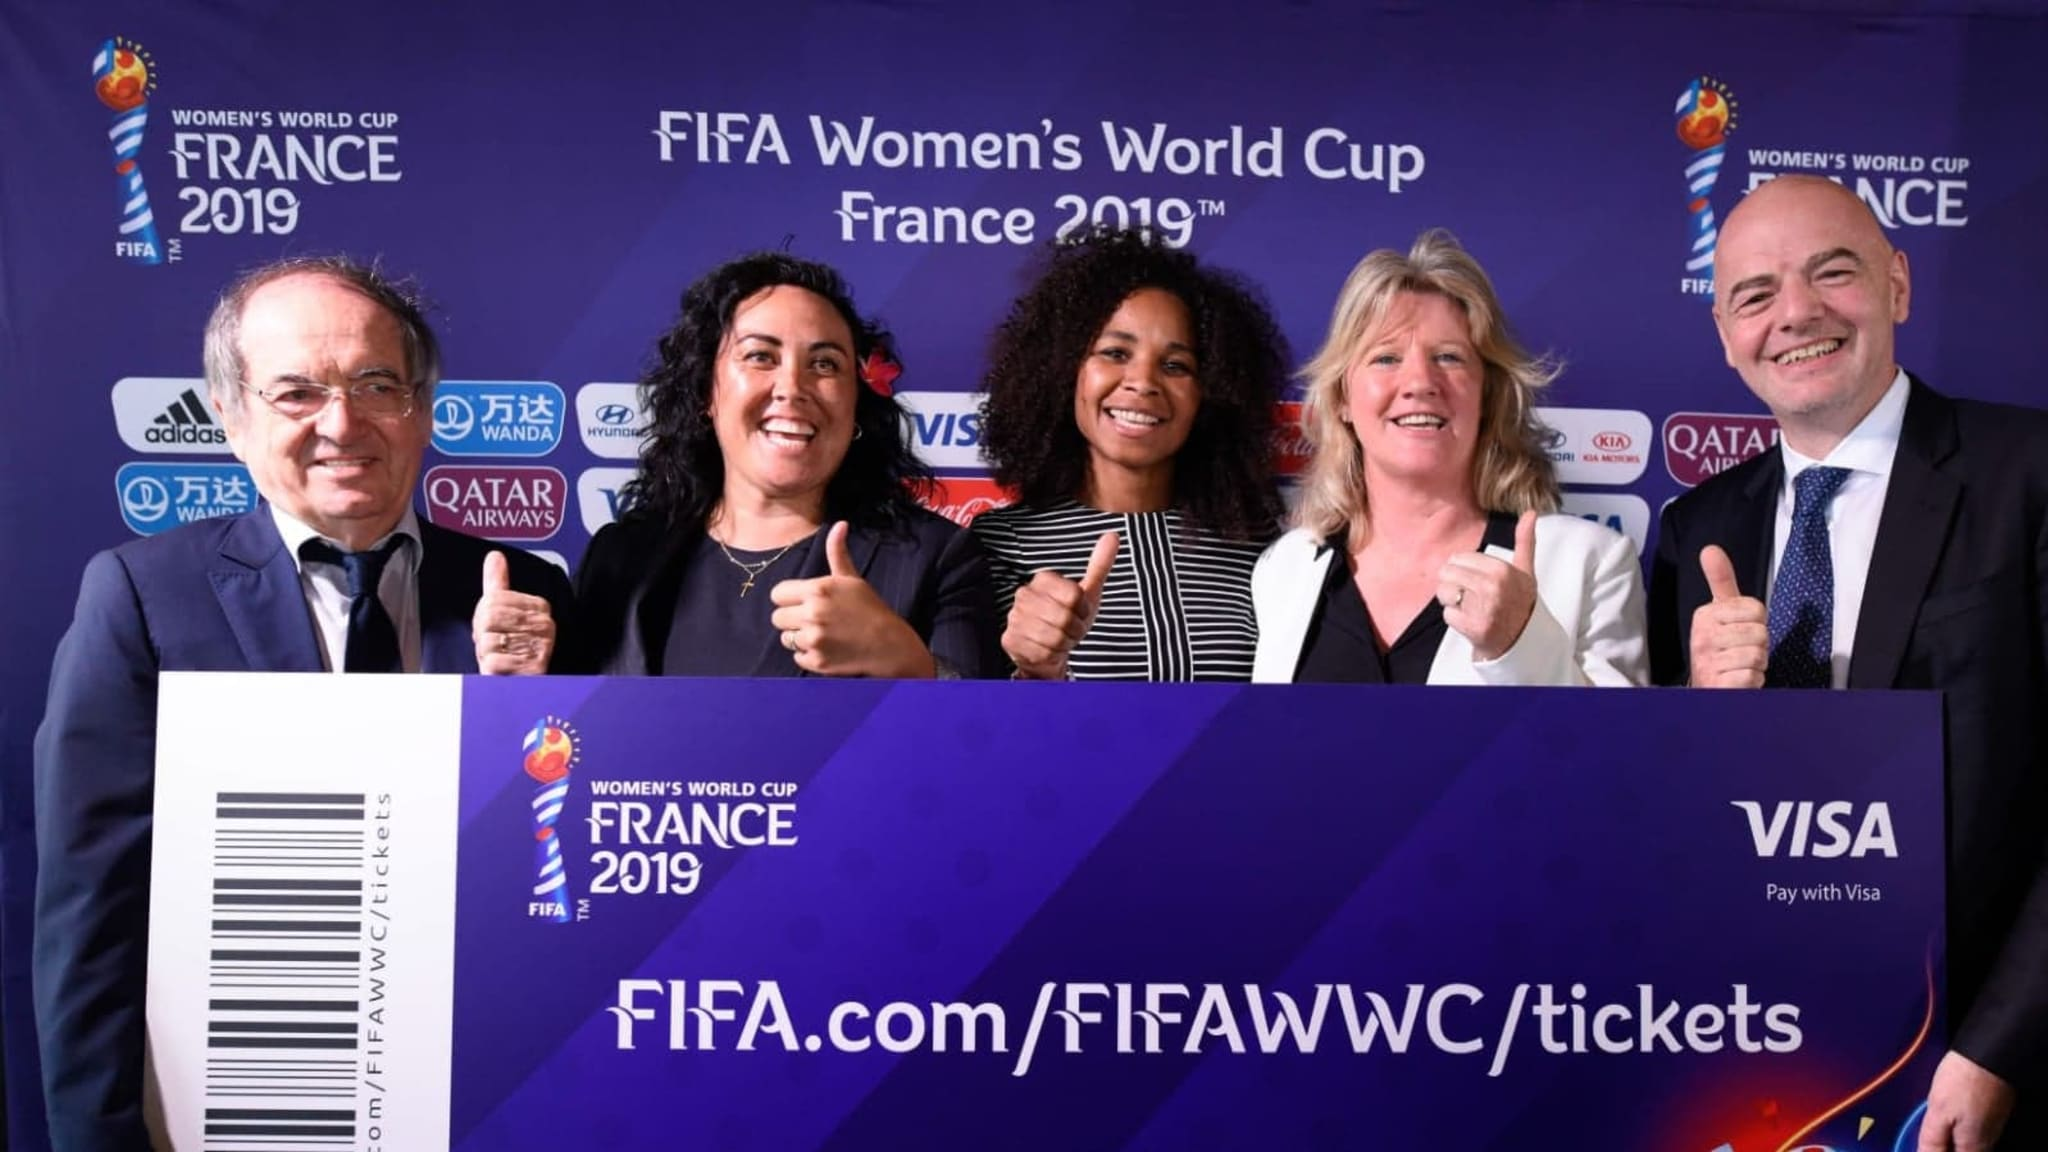 women's world cup 2019 - 1040×585